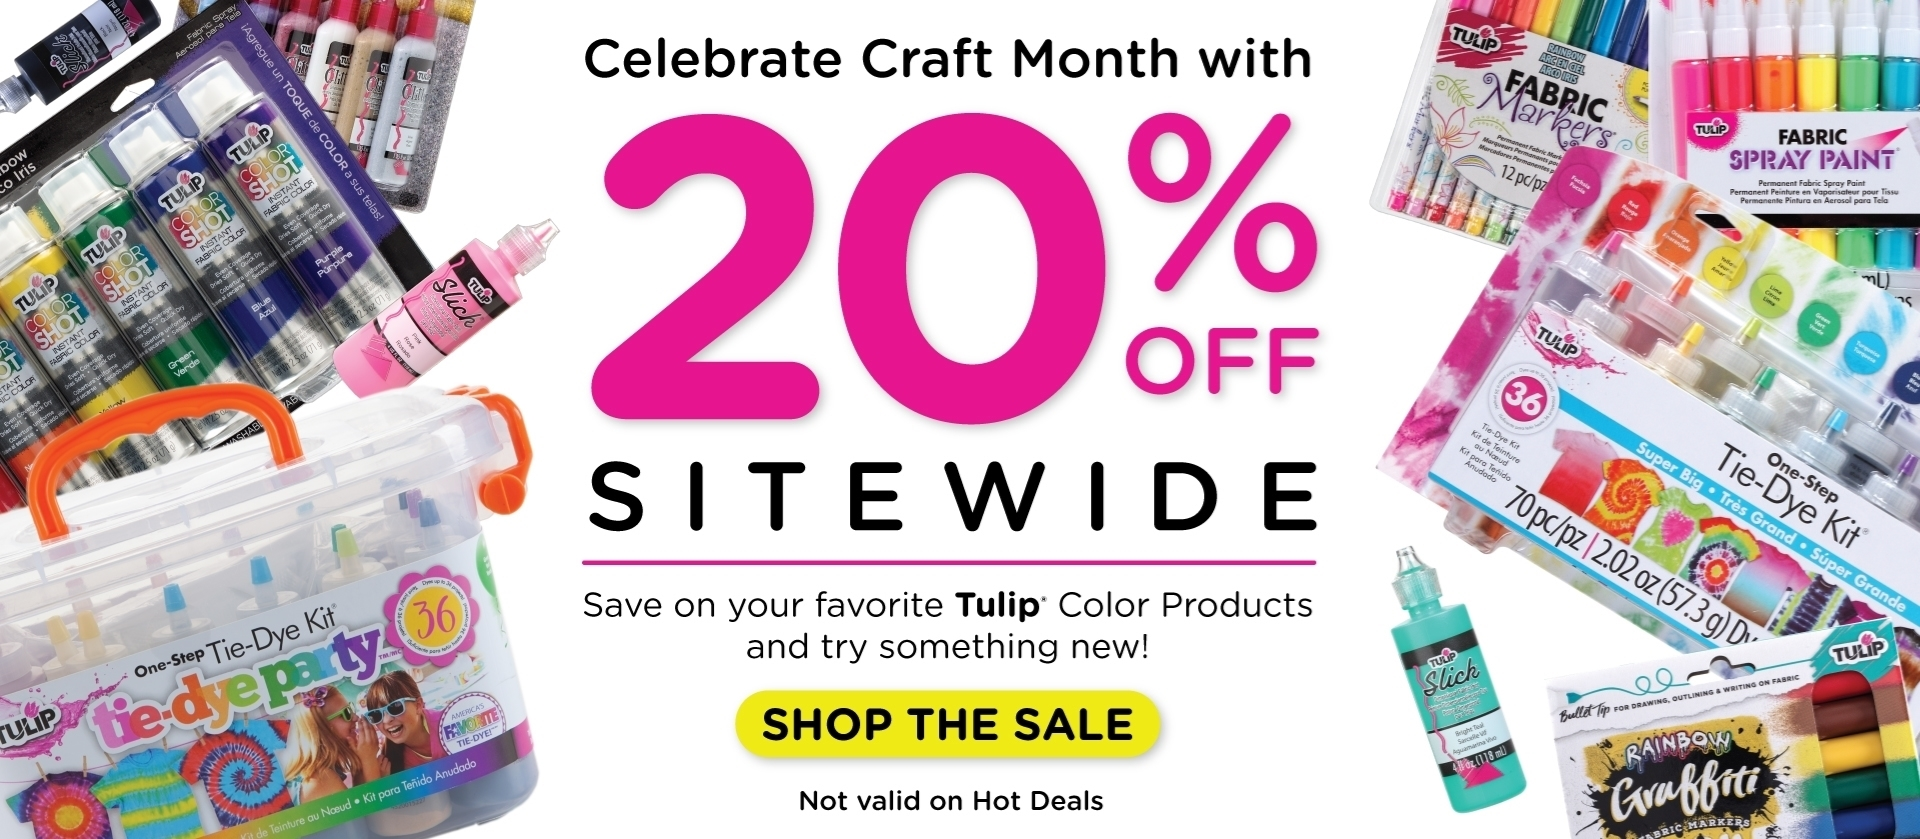 20% Off Sitewide Craft Month Promotion March 2021